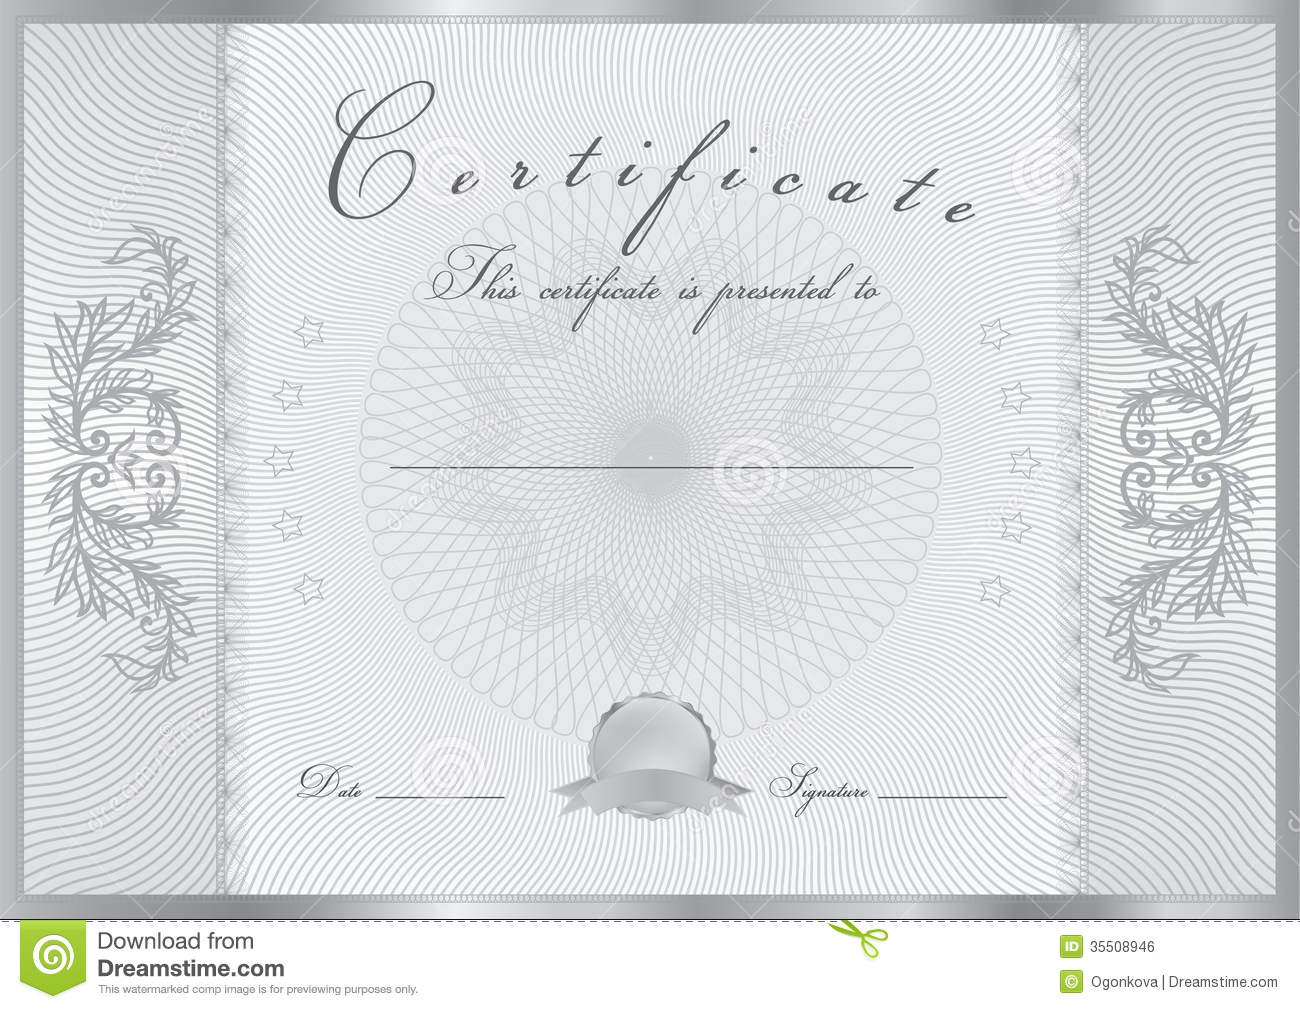 Free printable certificate border templates school application certificate diploma award template pattern stock vector image certificate diploma award template pattern completion design background yadclub Images